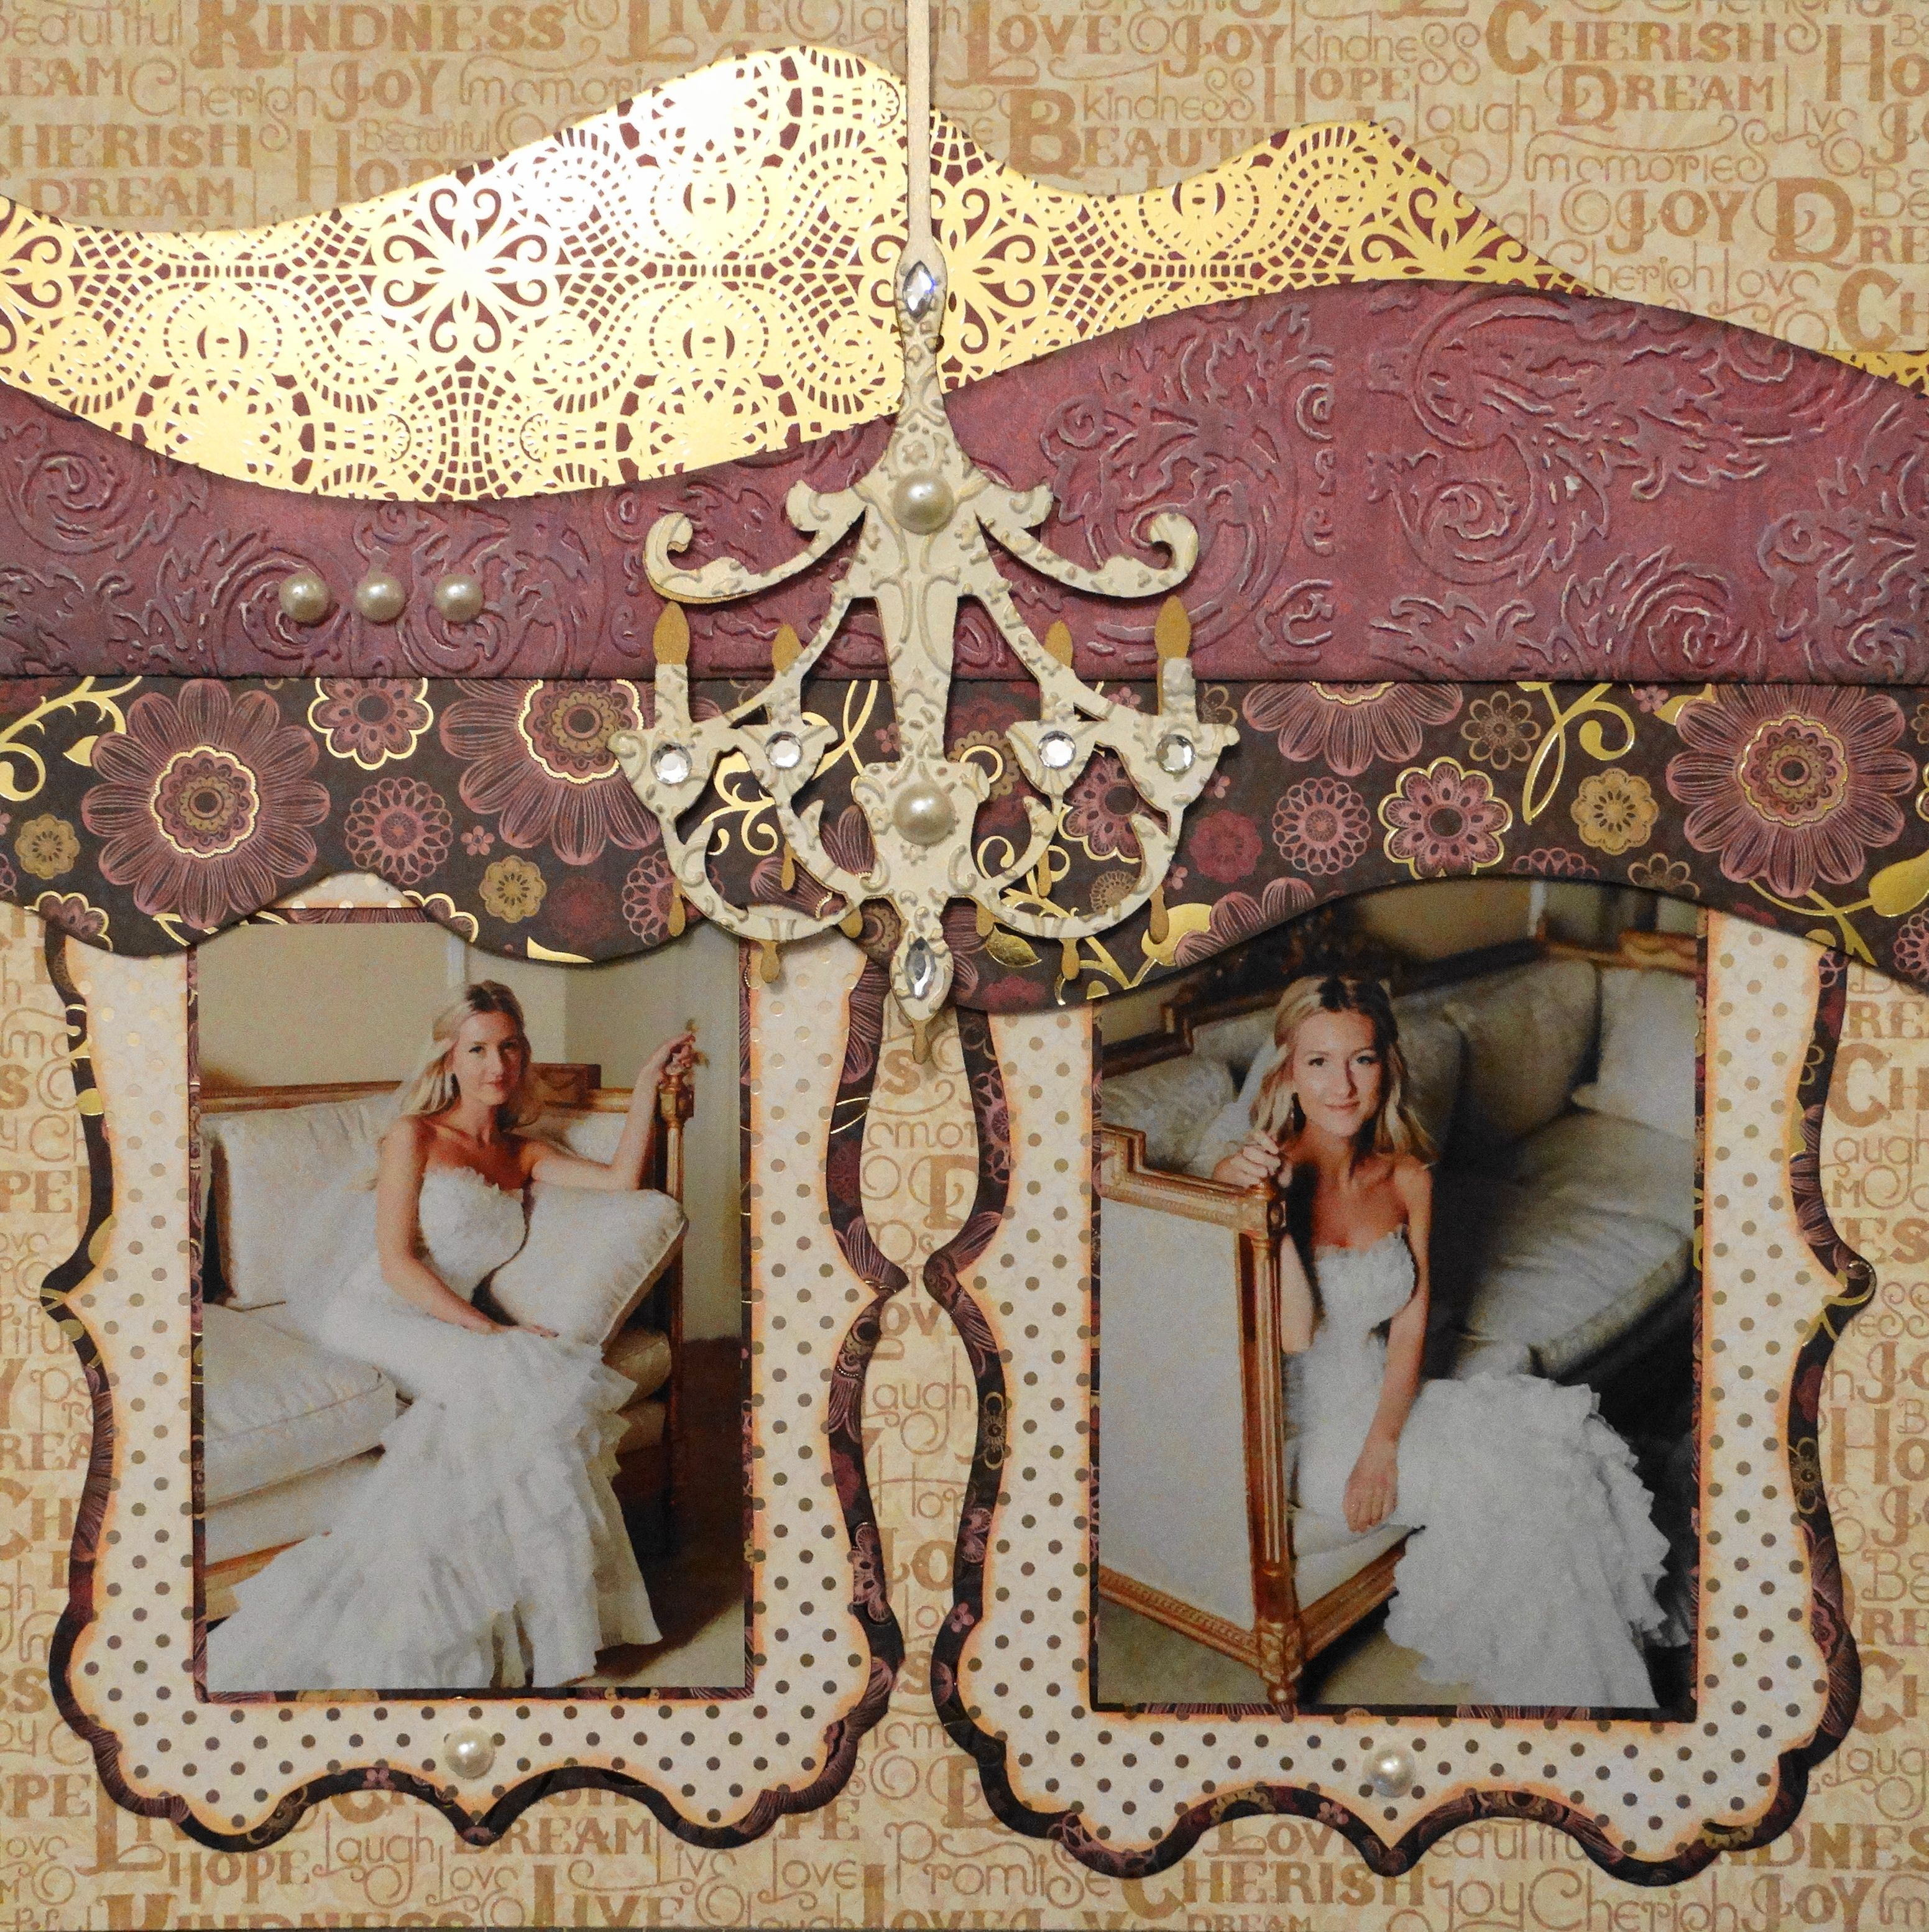 Wedding scrapbook ideas using cricut - The Bride Wedding Scrapbook Page With A Chandelier Image From Cricut S Wall Decor More From Wedding Album 4